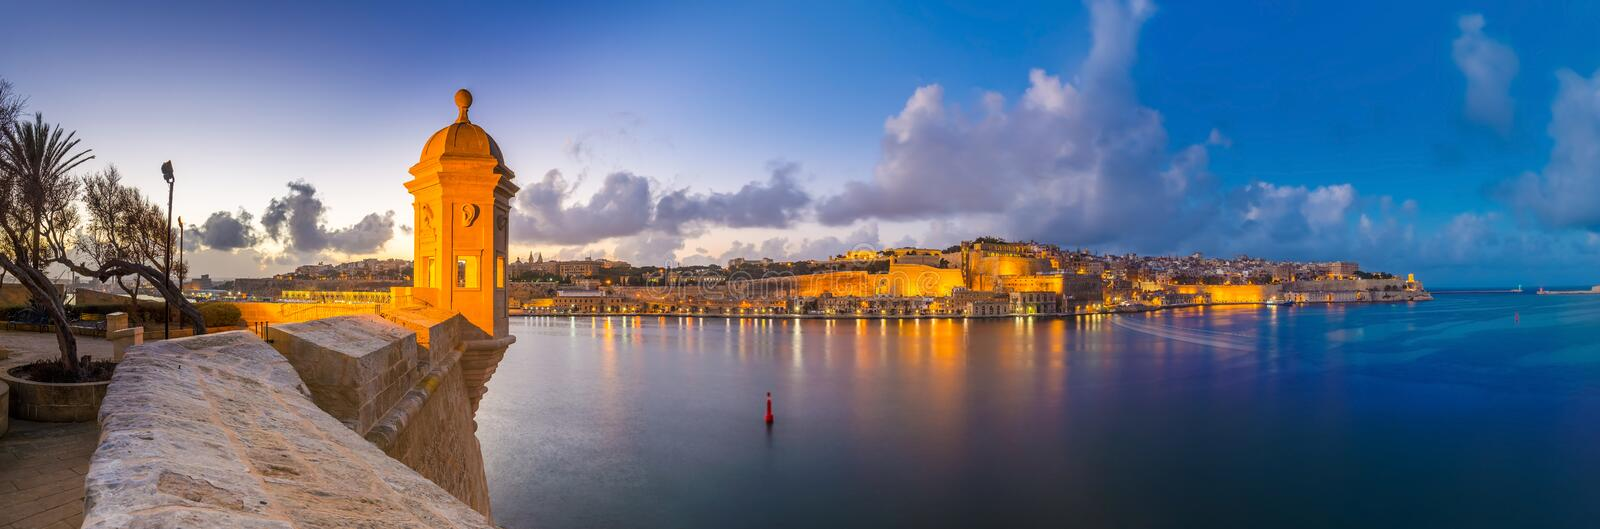 Senglea, Malta - Panoramic skyline view at the watch tower at Fort Saint Michael, Gardjola Gardens. With beautiful sky and clouds at blue hour royalty free stock photos